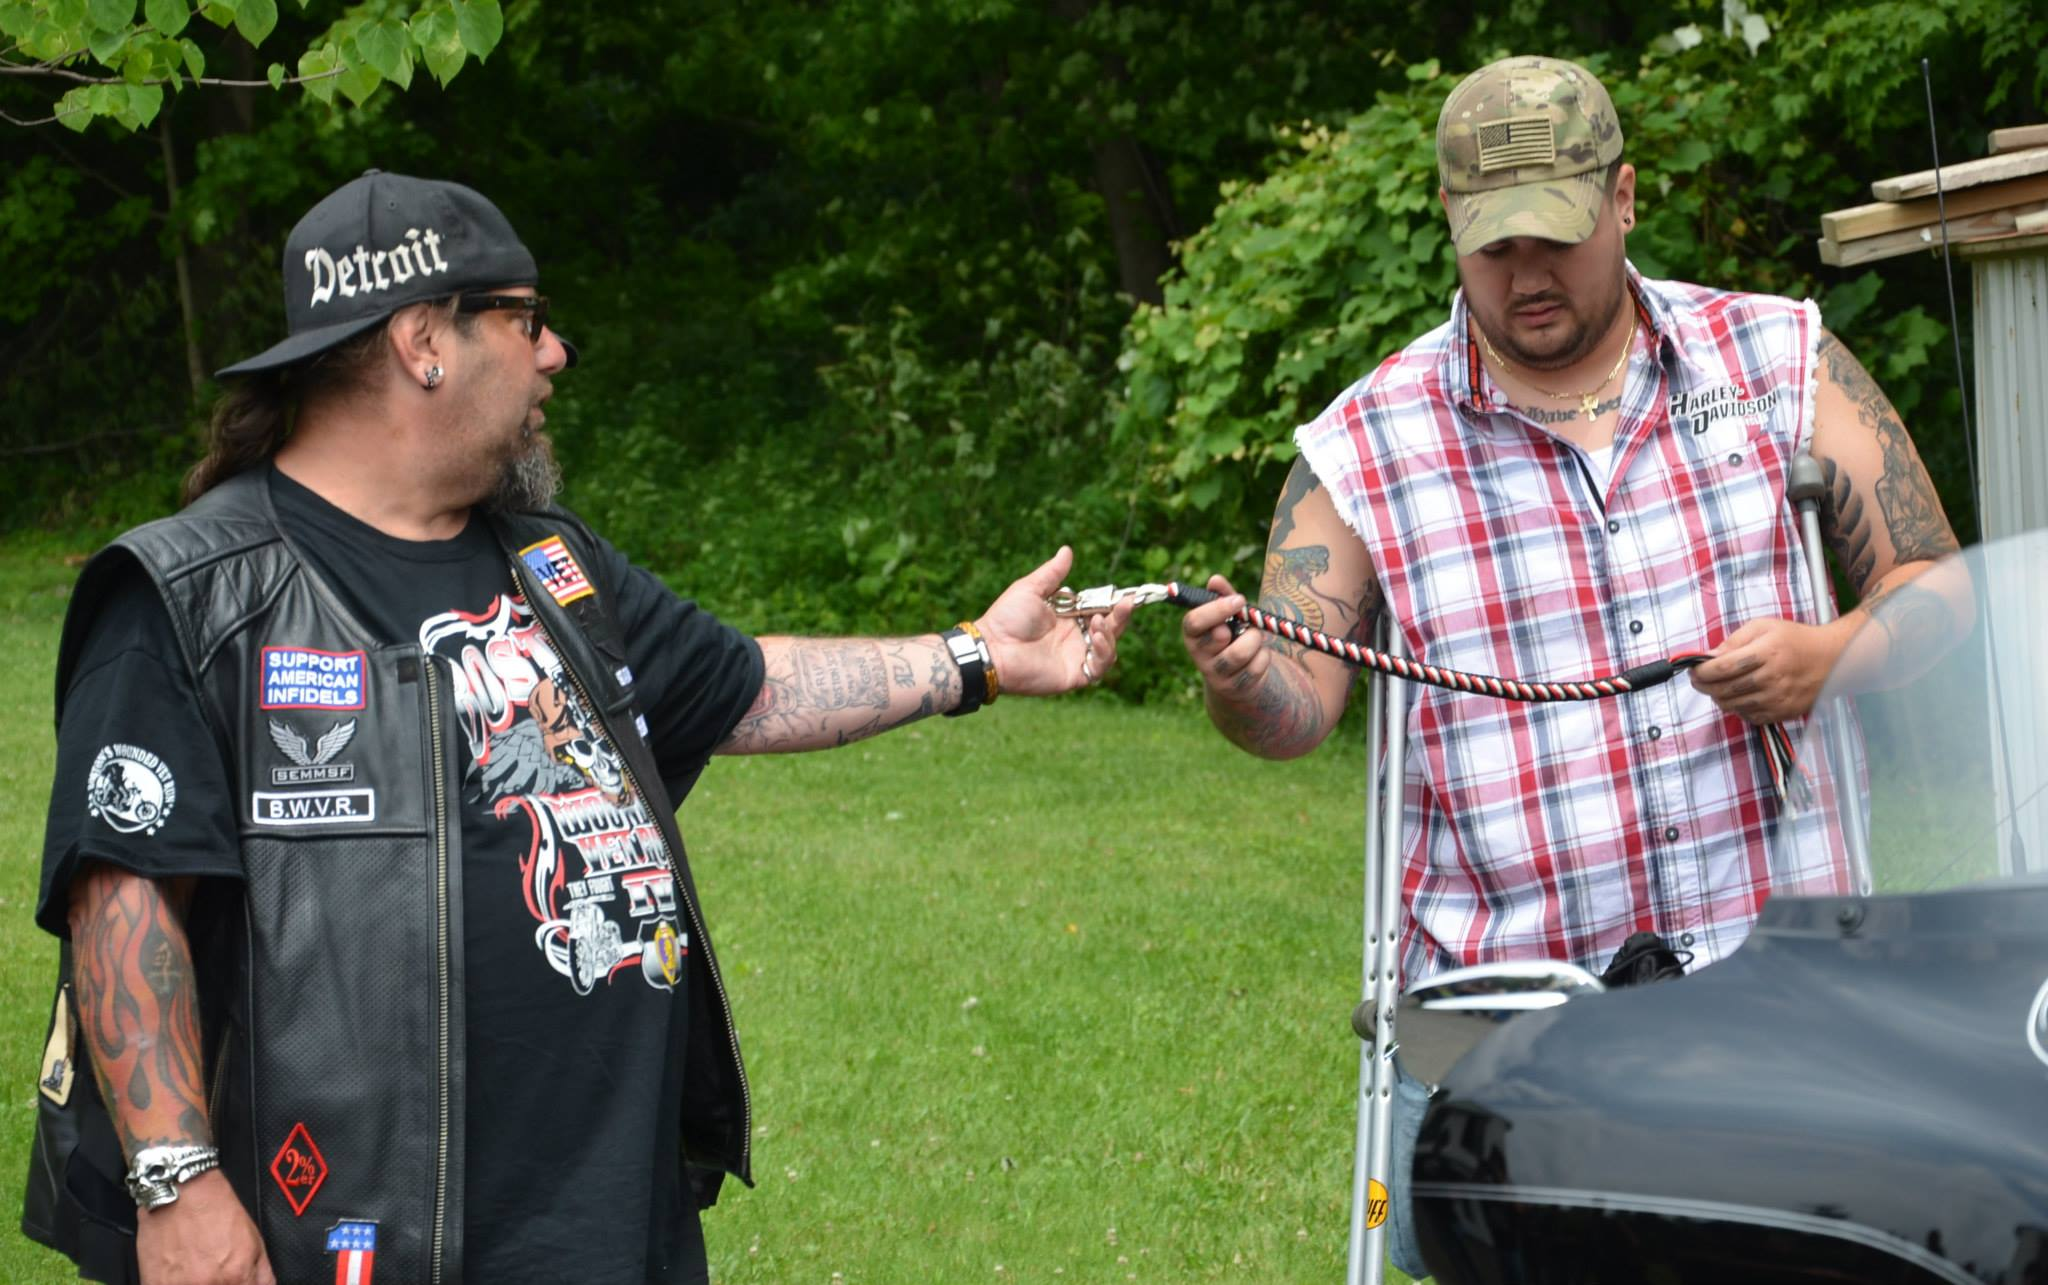 Boston Wounded Vet MC Ride presents Andy Kingsley his New 2014 Modified Trike16